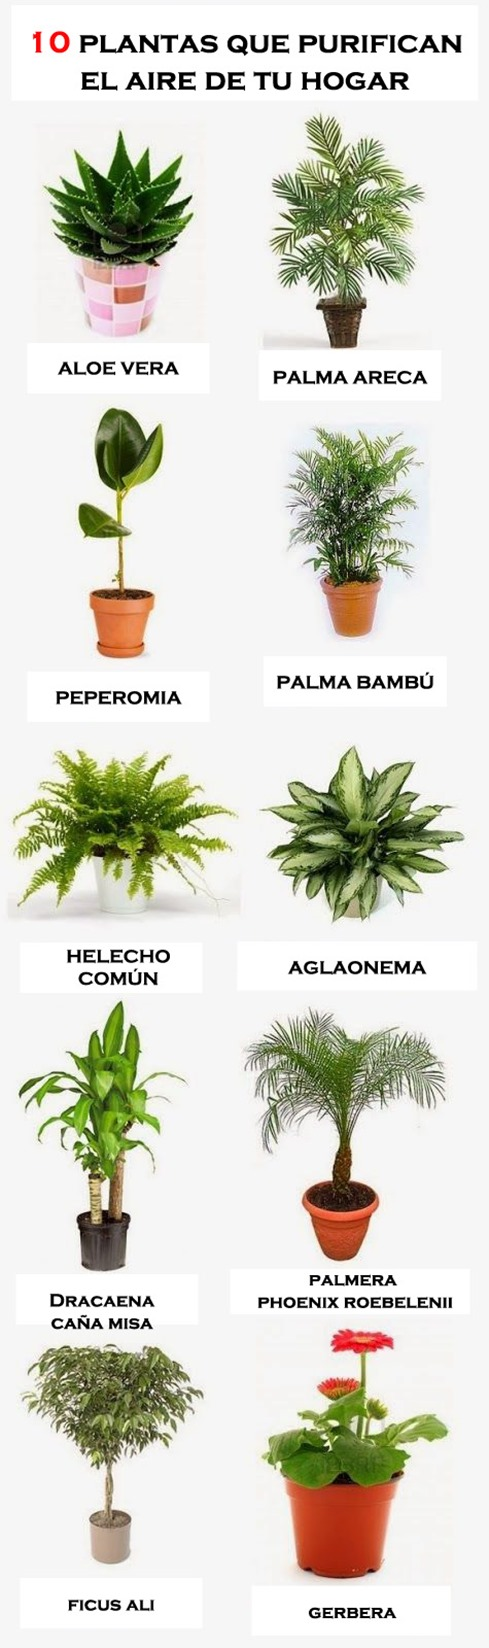 las 10 mejores plantas para purificar el aire en casa infograf a conciencia eco. Black Bedroom Furniture Sets. Home Design Ideas